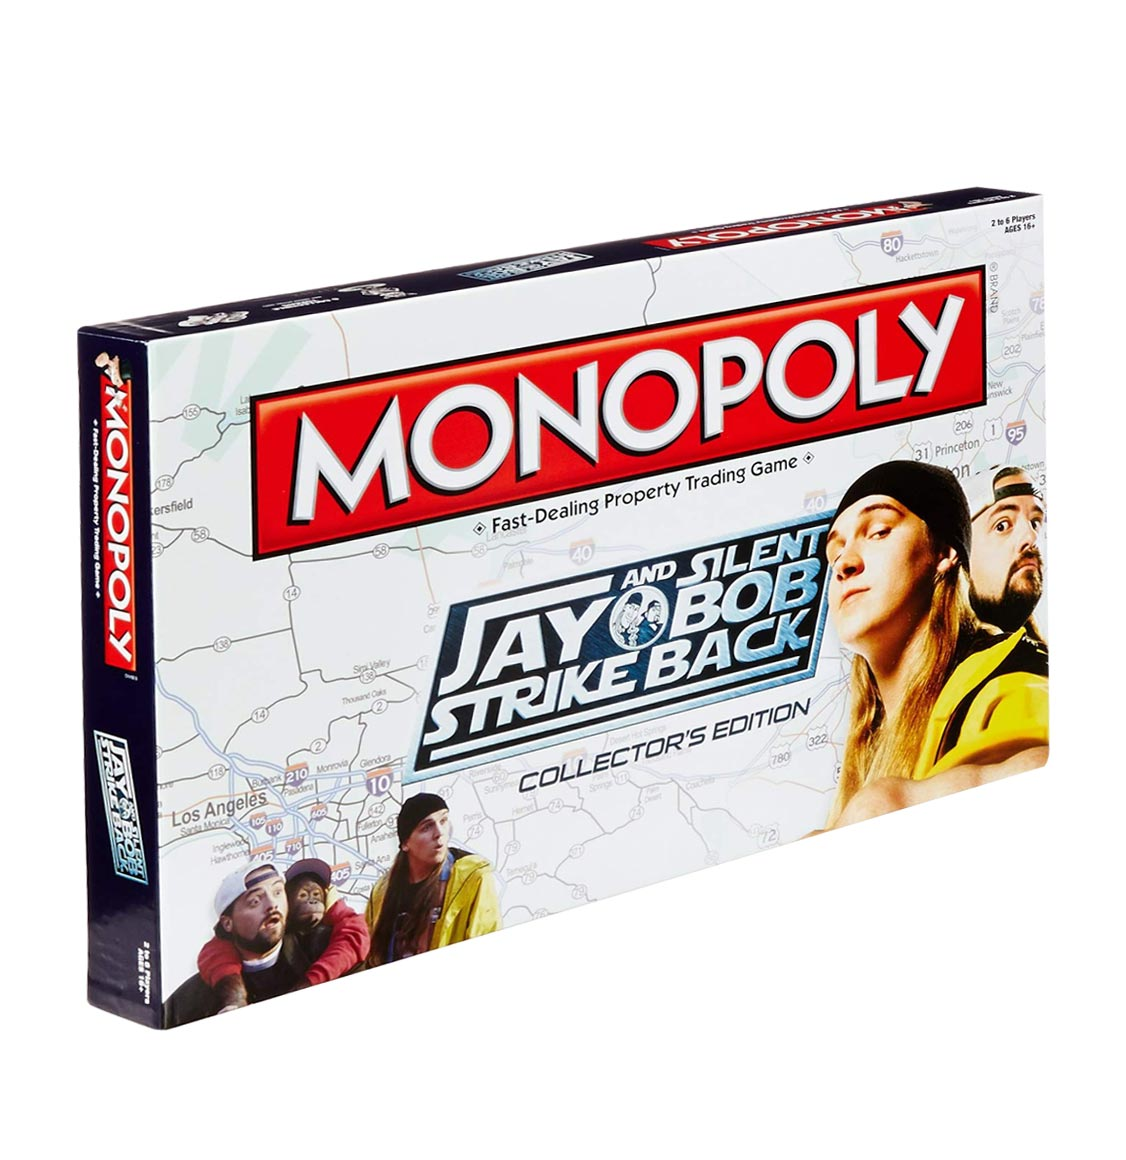 Monopoly Jay and Silent Bob Strike Back English Edition USAopoly